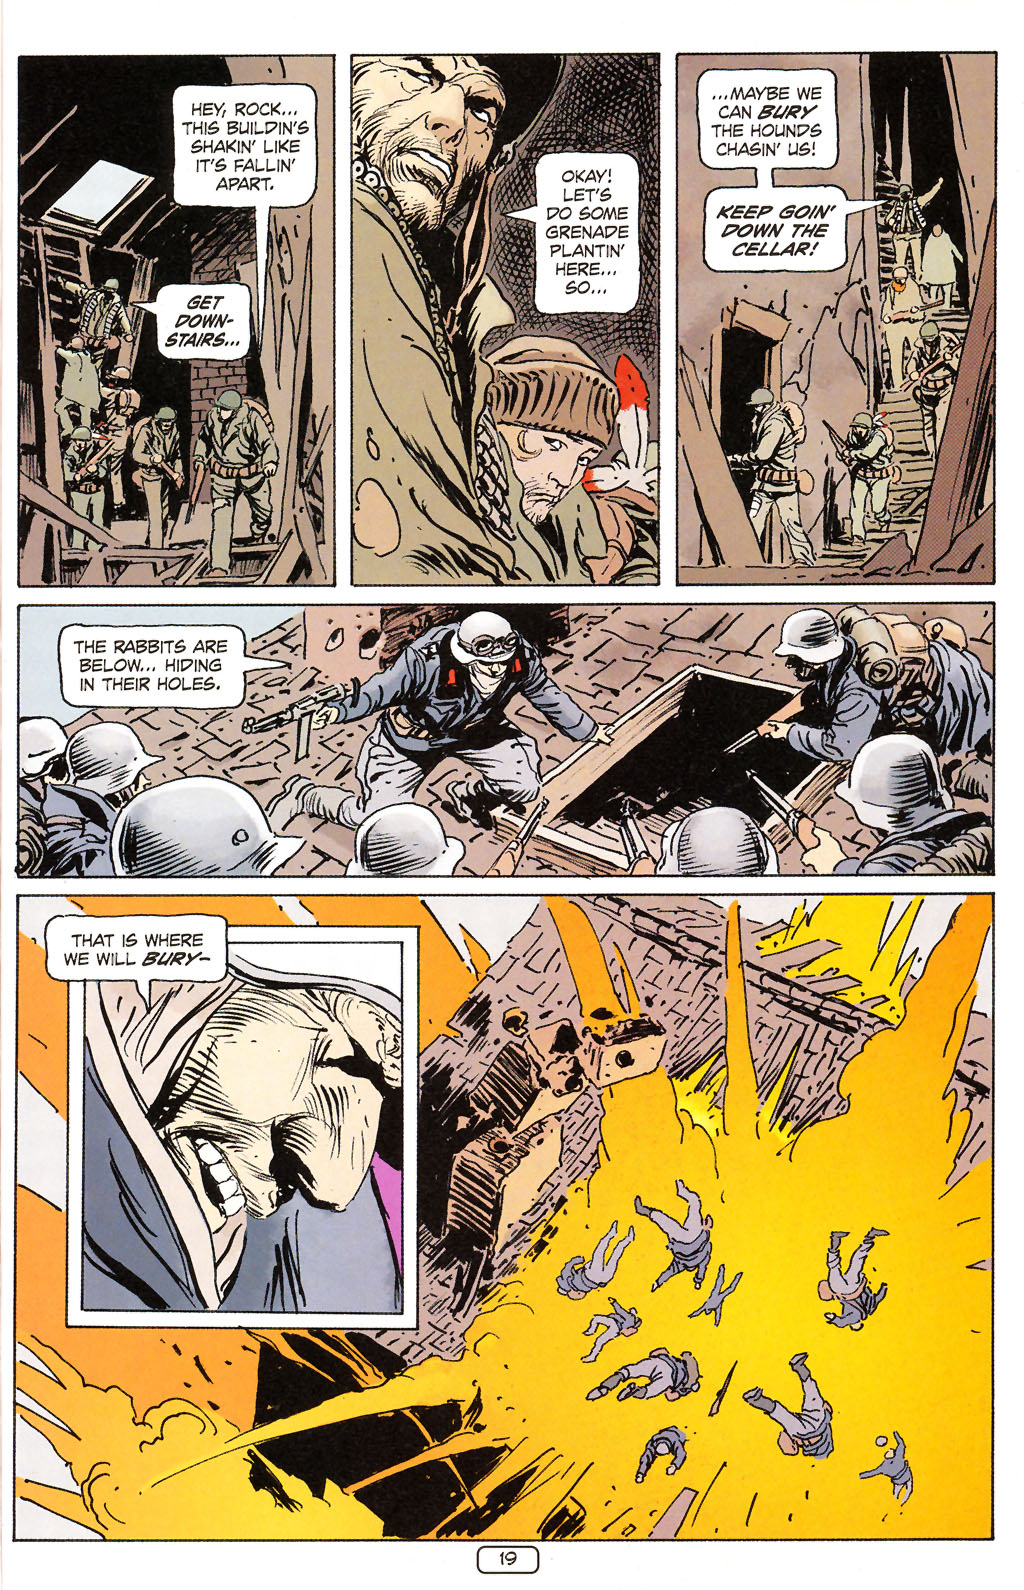 Read online Sgt. Rock: The Prophecy comic -  Issue #6 - 19